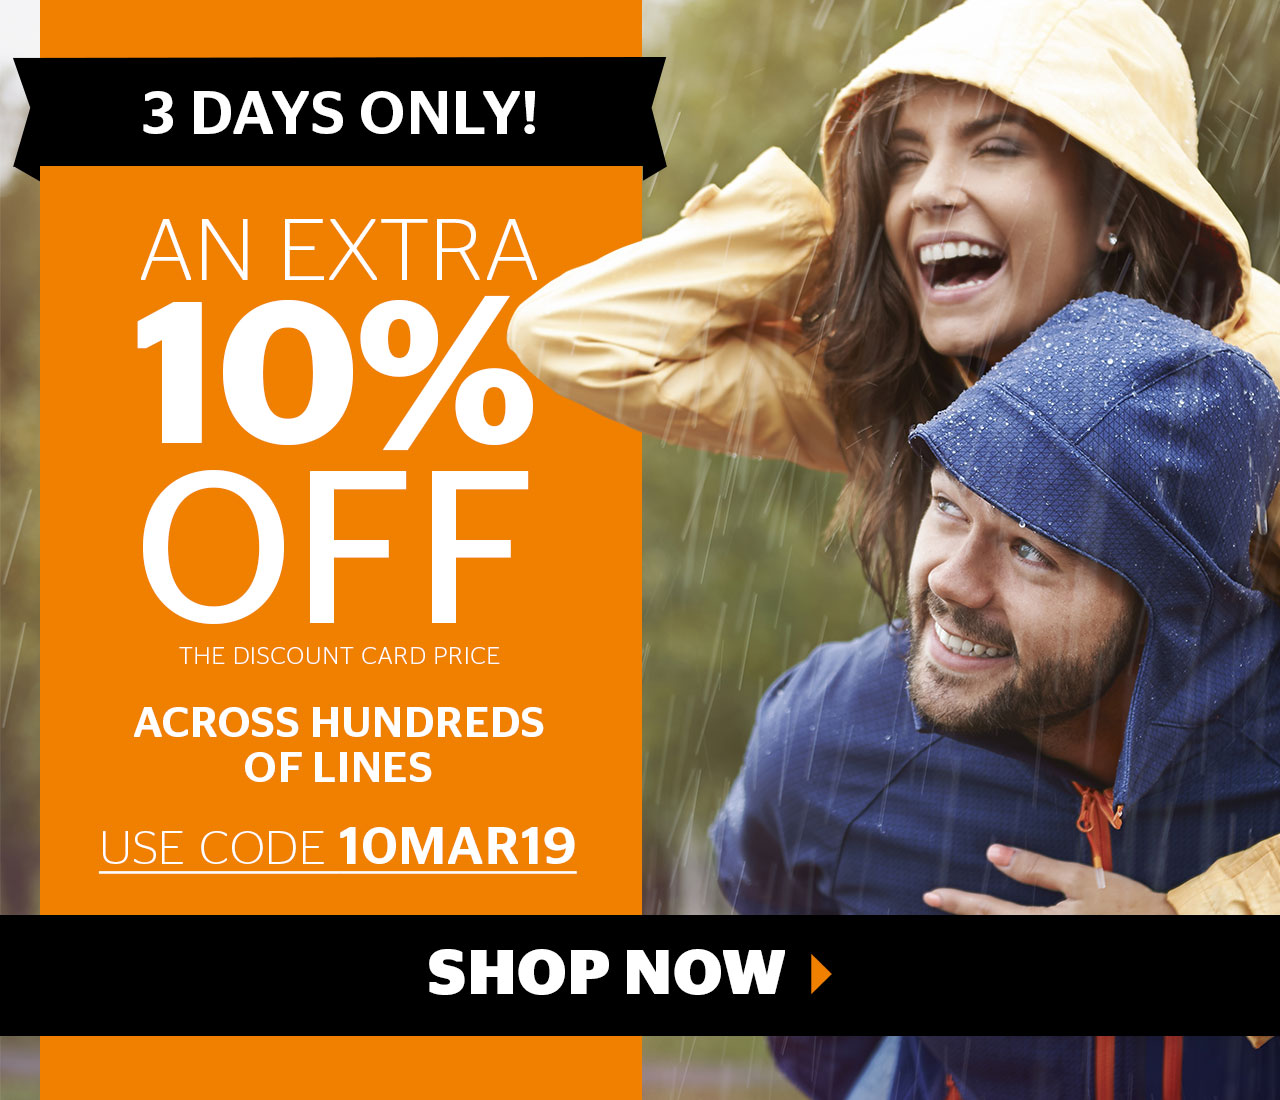 An extra 10% off the Discount Card price across hundreds of lines